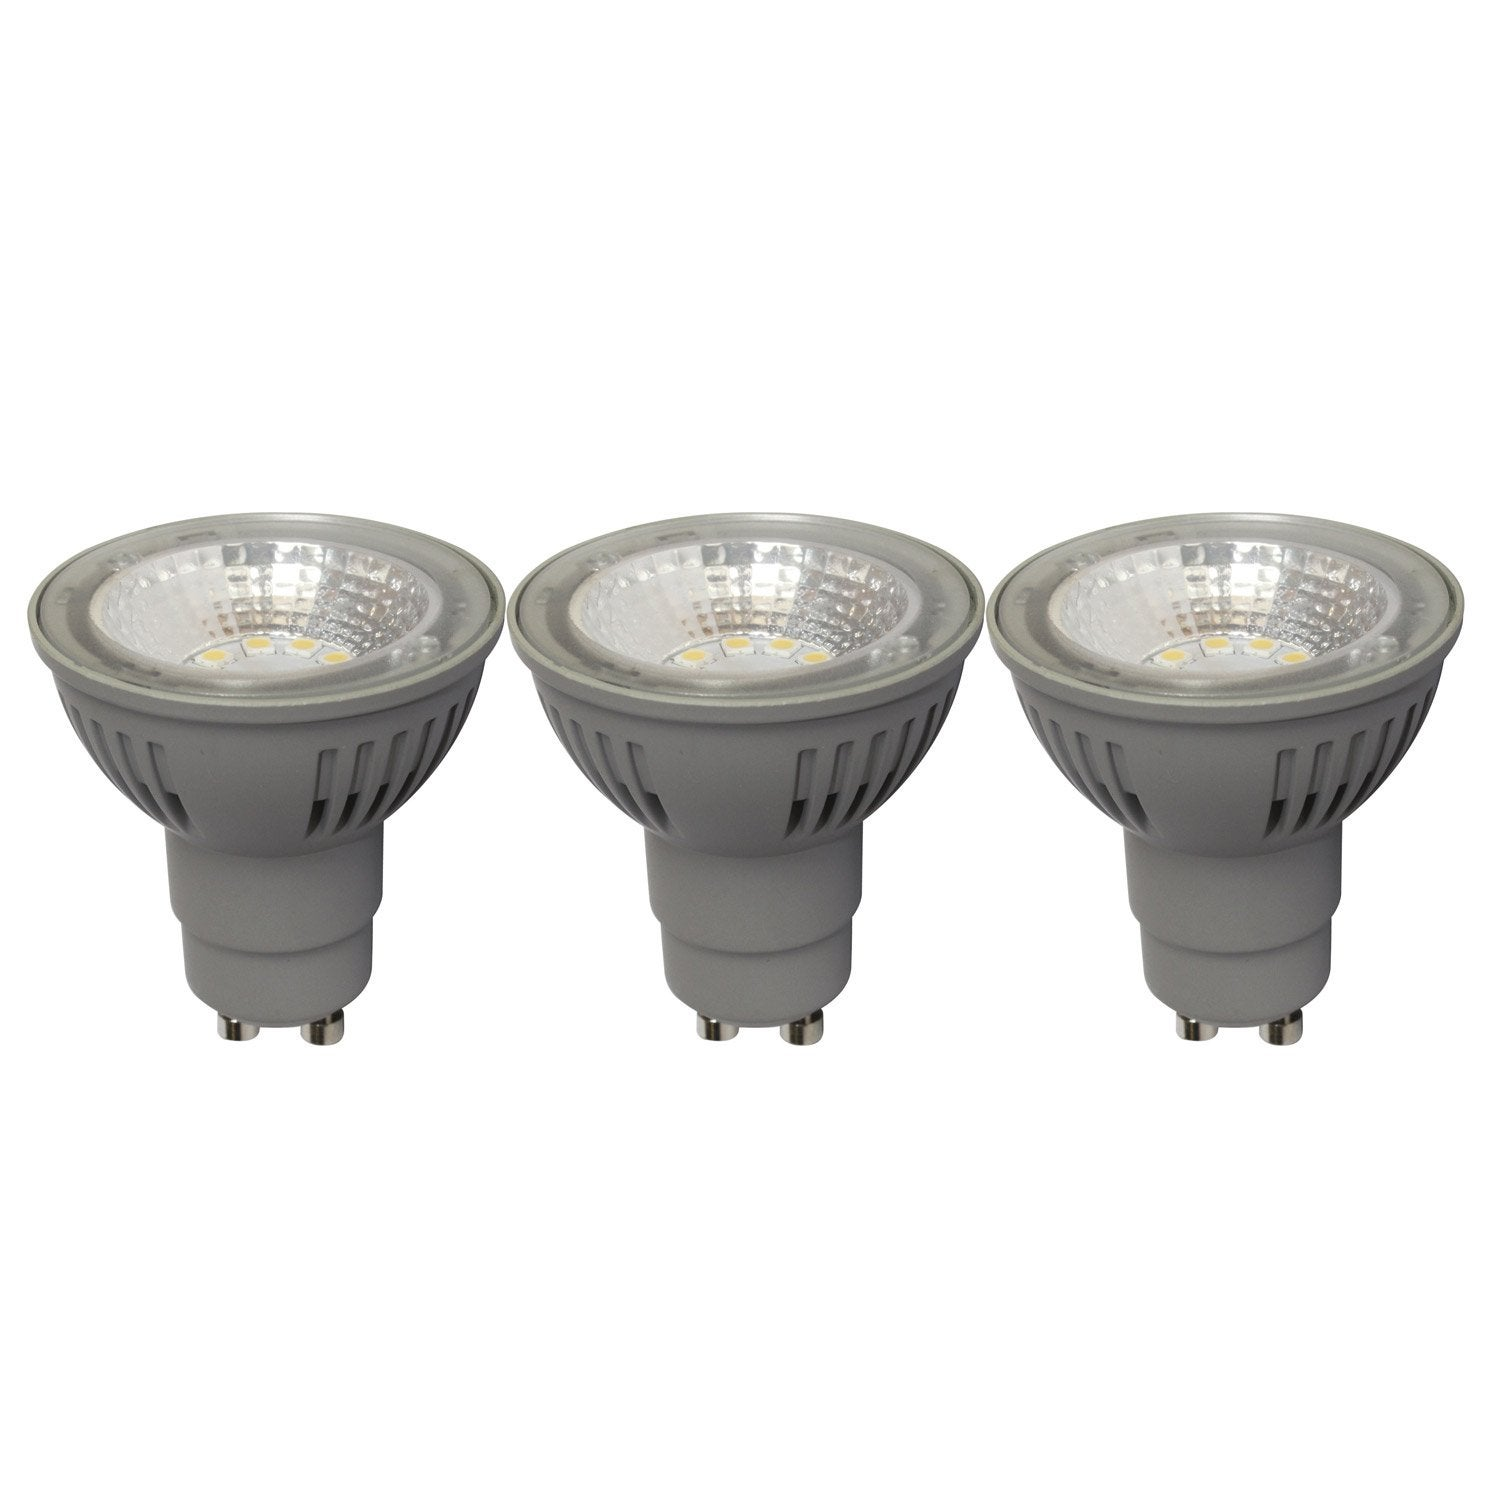 lot de 3 ampoules r flecteur led 5w 50w lumi re douce environ 4000 k lexman leroy merlin. Black Bedroom Furniture Sets. Home Design Ideas